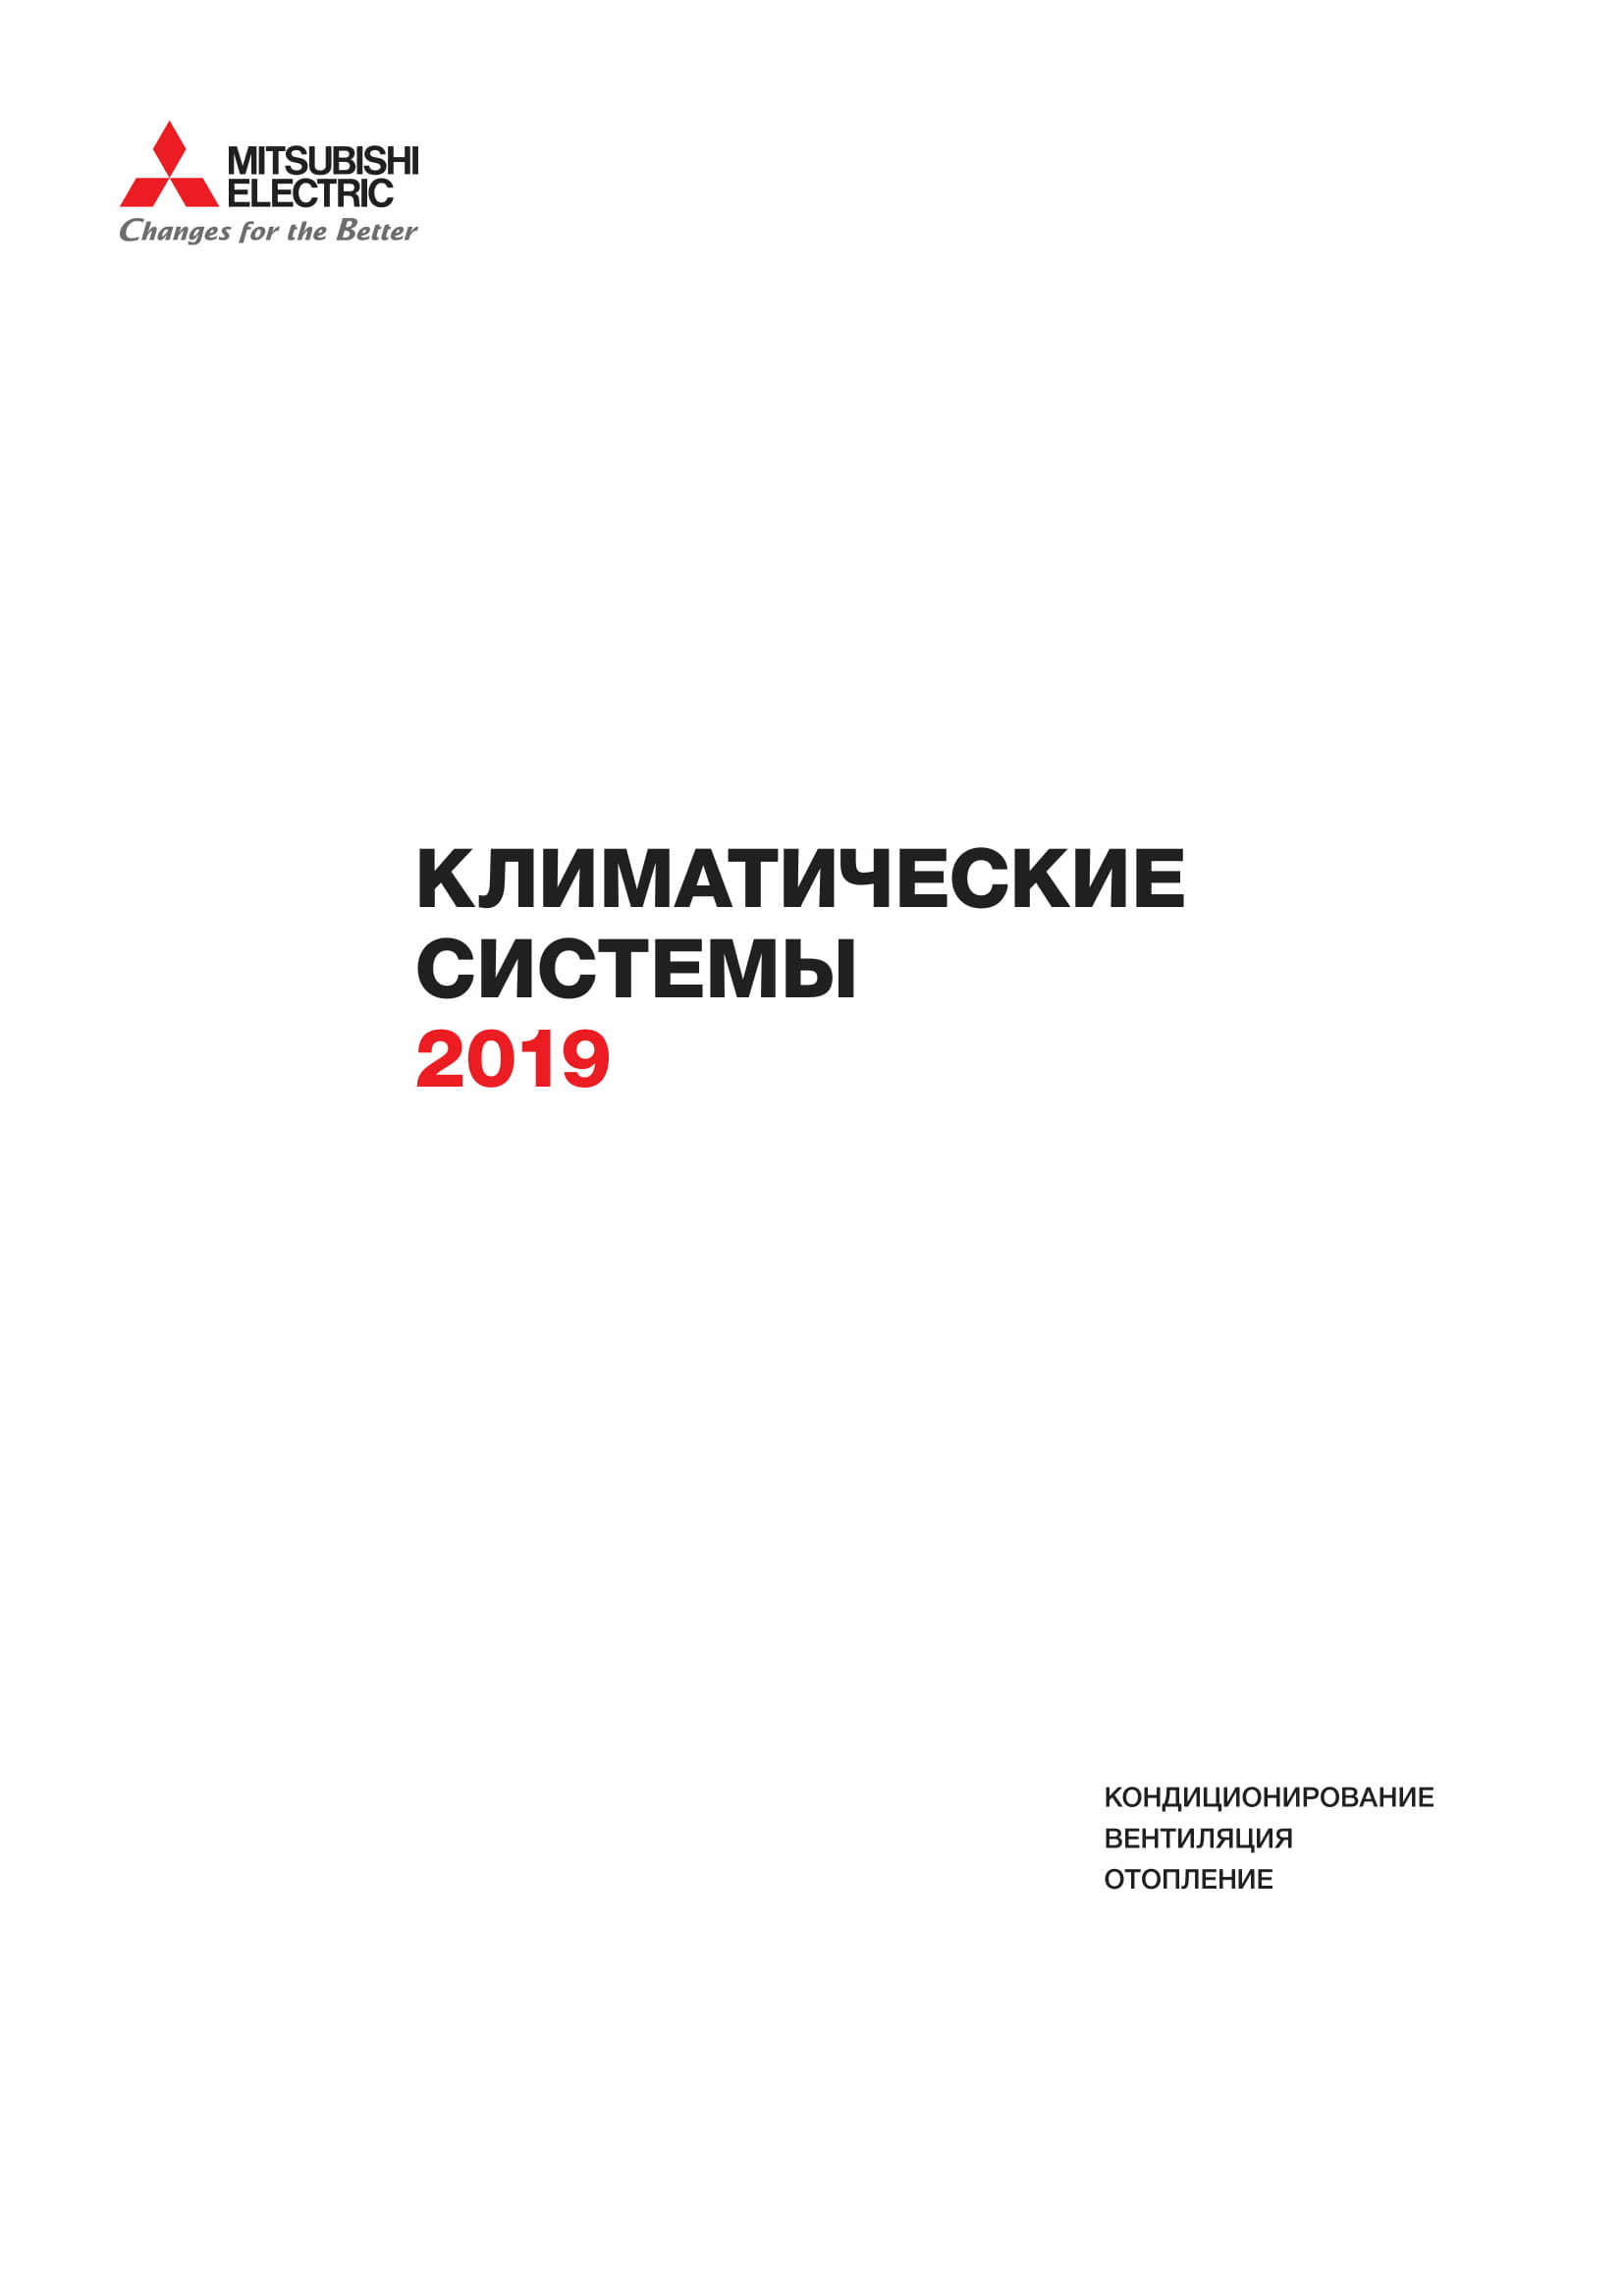 каталог Mitsubishi Electric 2019